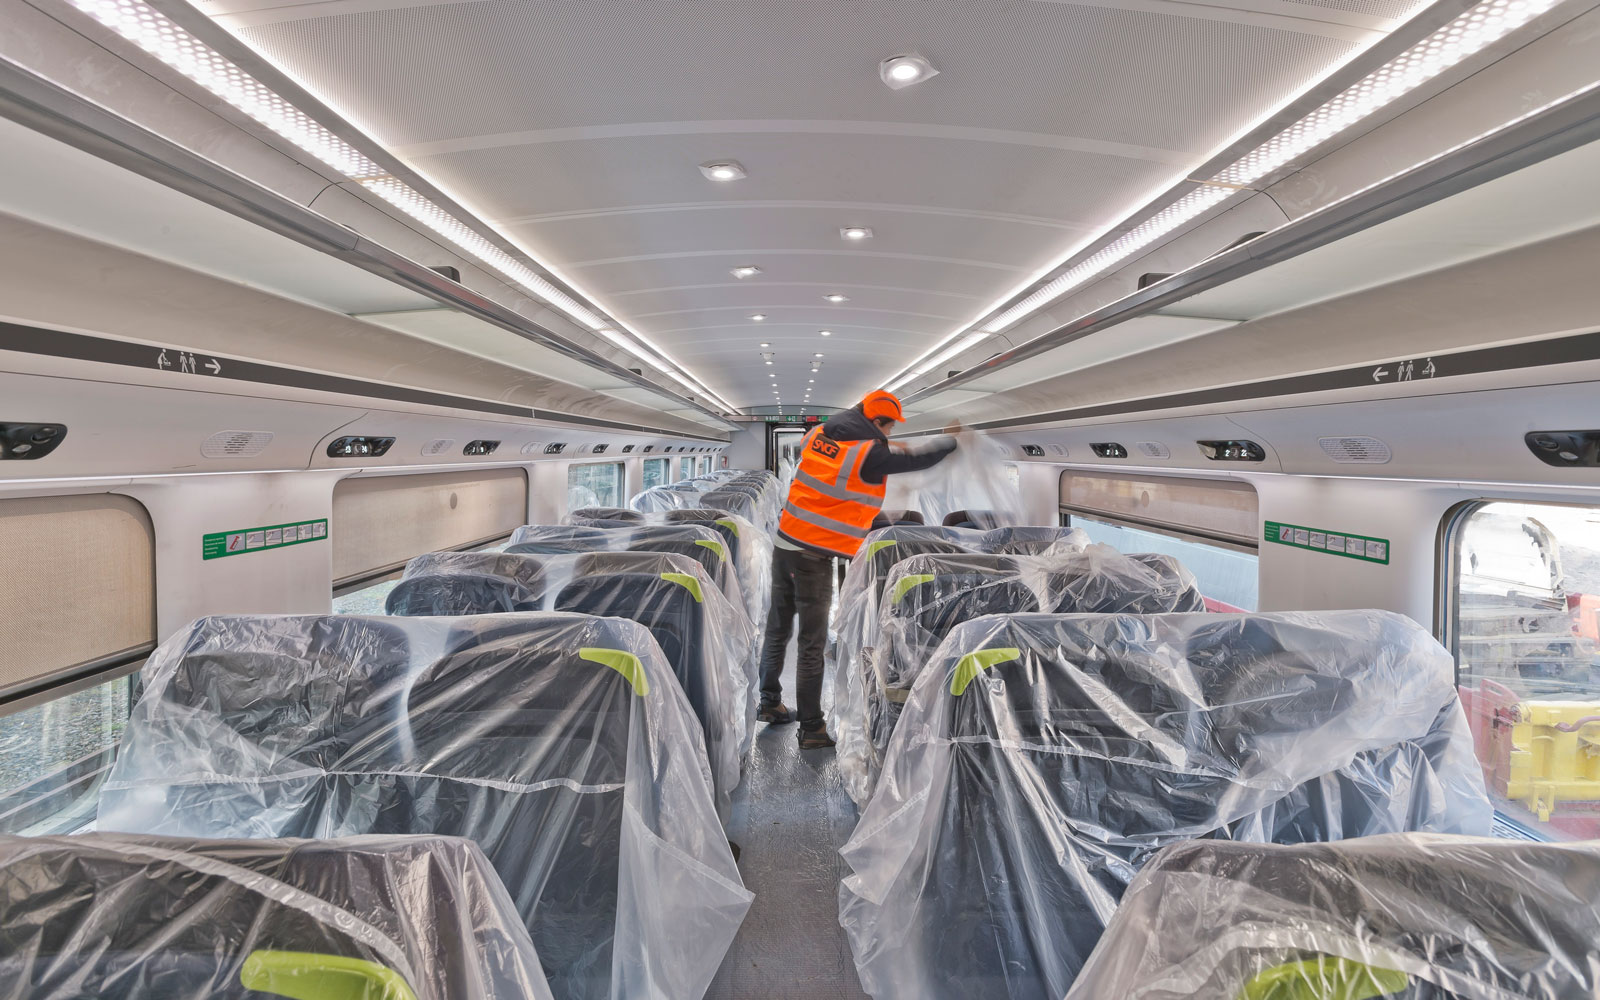 eurostar-finishing-touches-EUROSTAR217.jpg